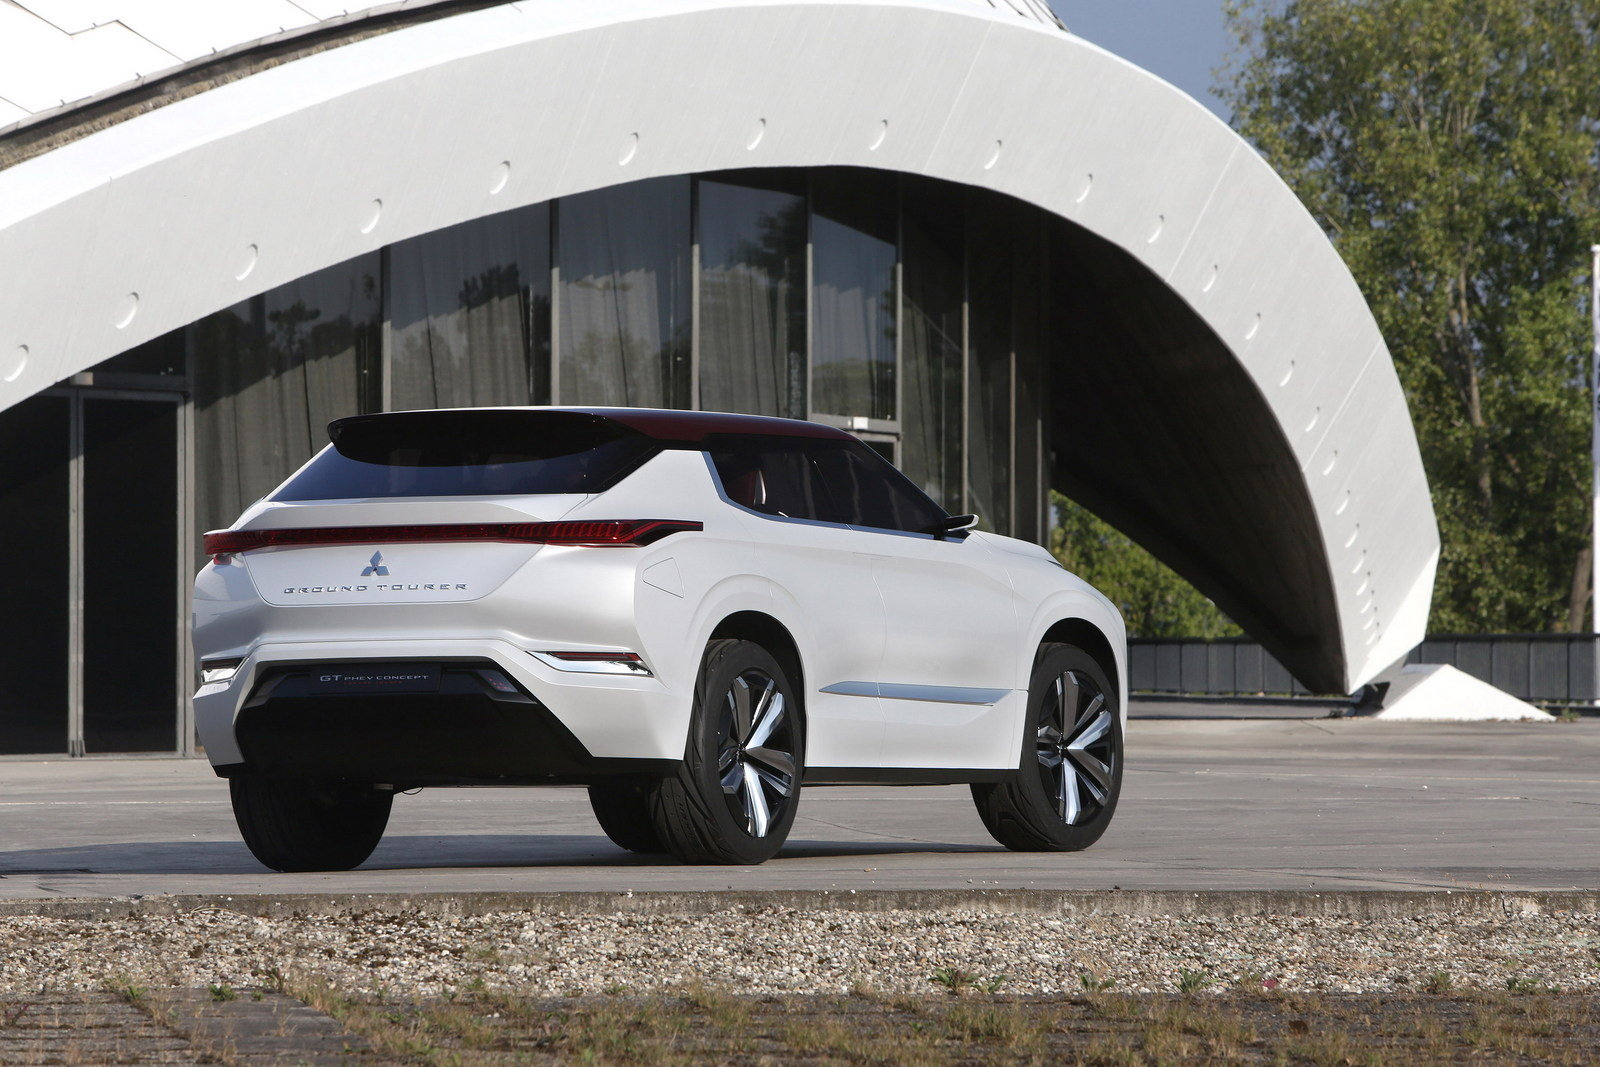 New 2016 Mitsubishi GTPHEV Concept  Picture 689986  Car